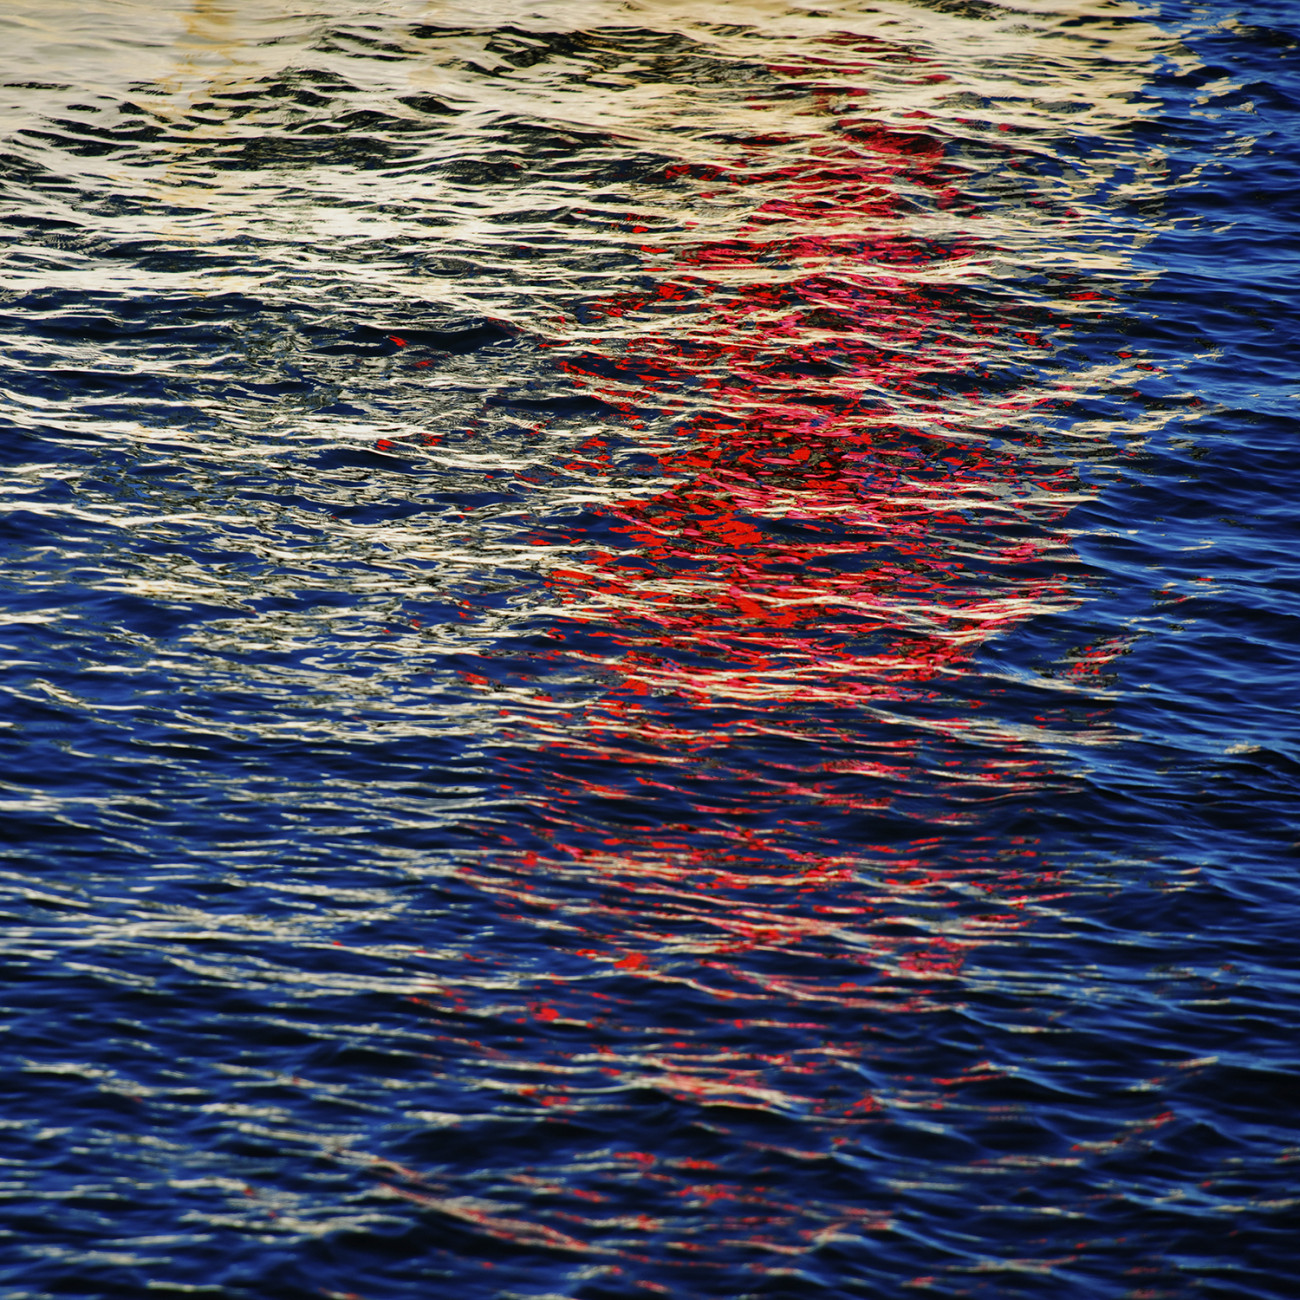 Red White and Blue ocean, Cape Cod, 2009